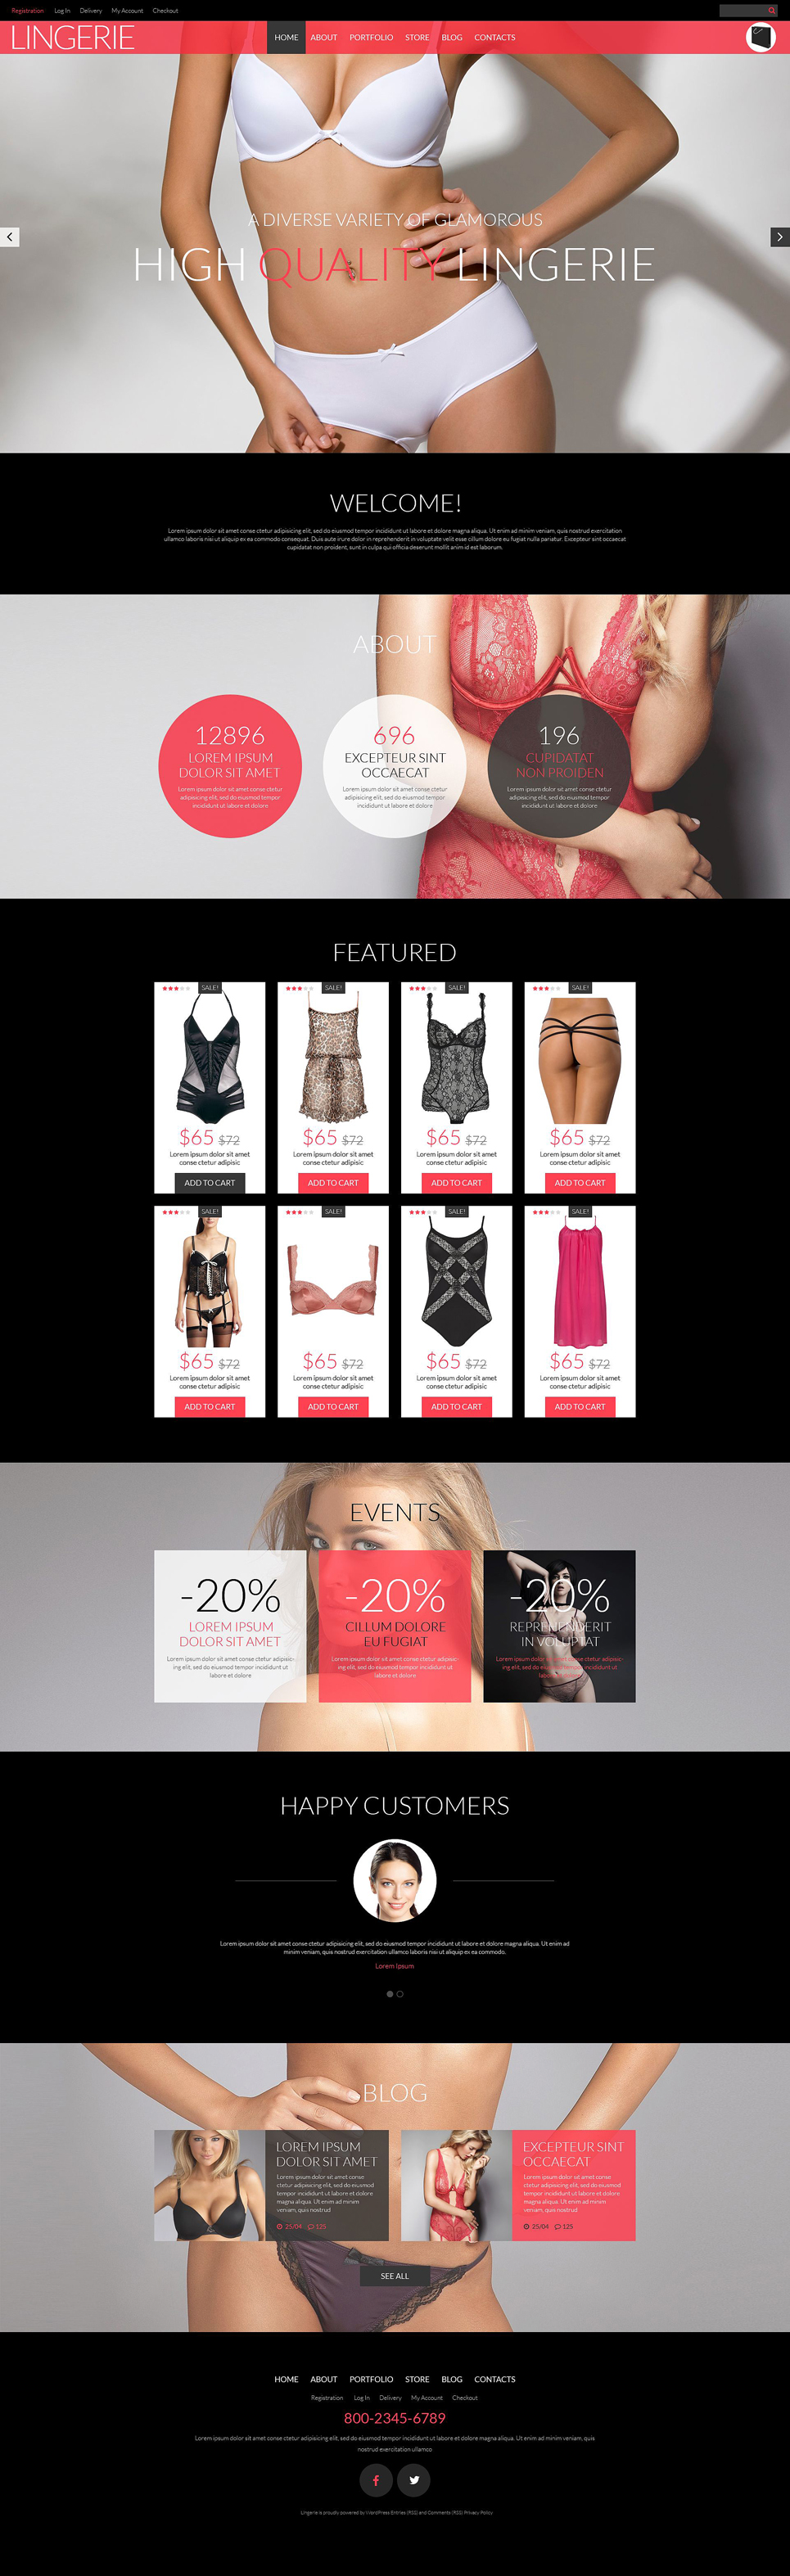 Lingerie Shop WooCommerce Theme